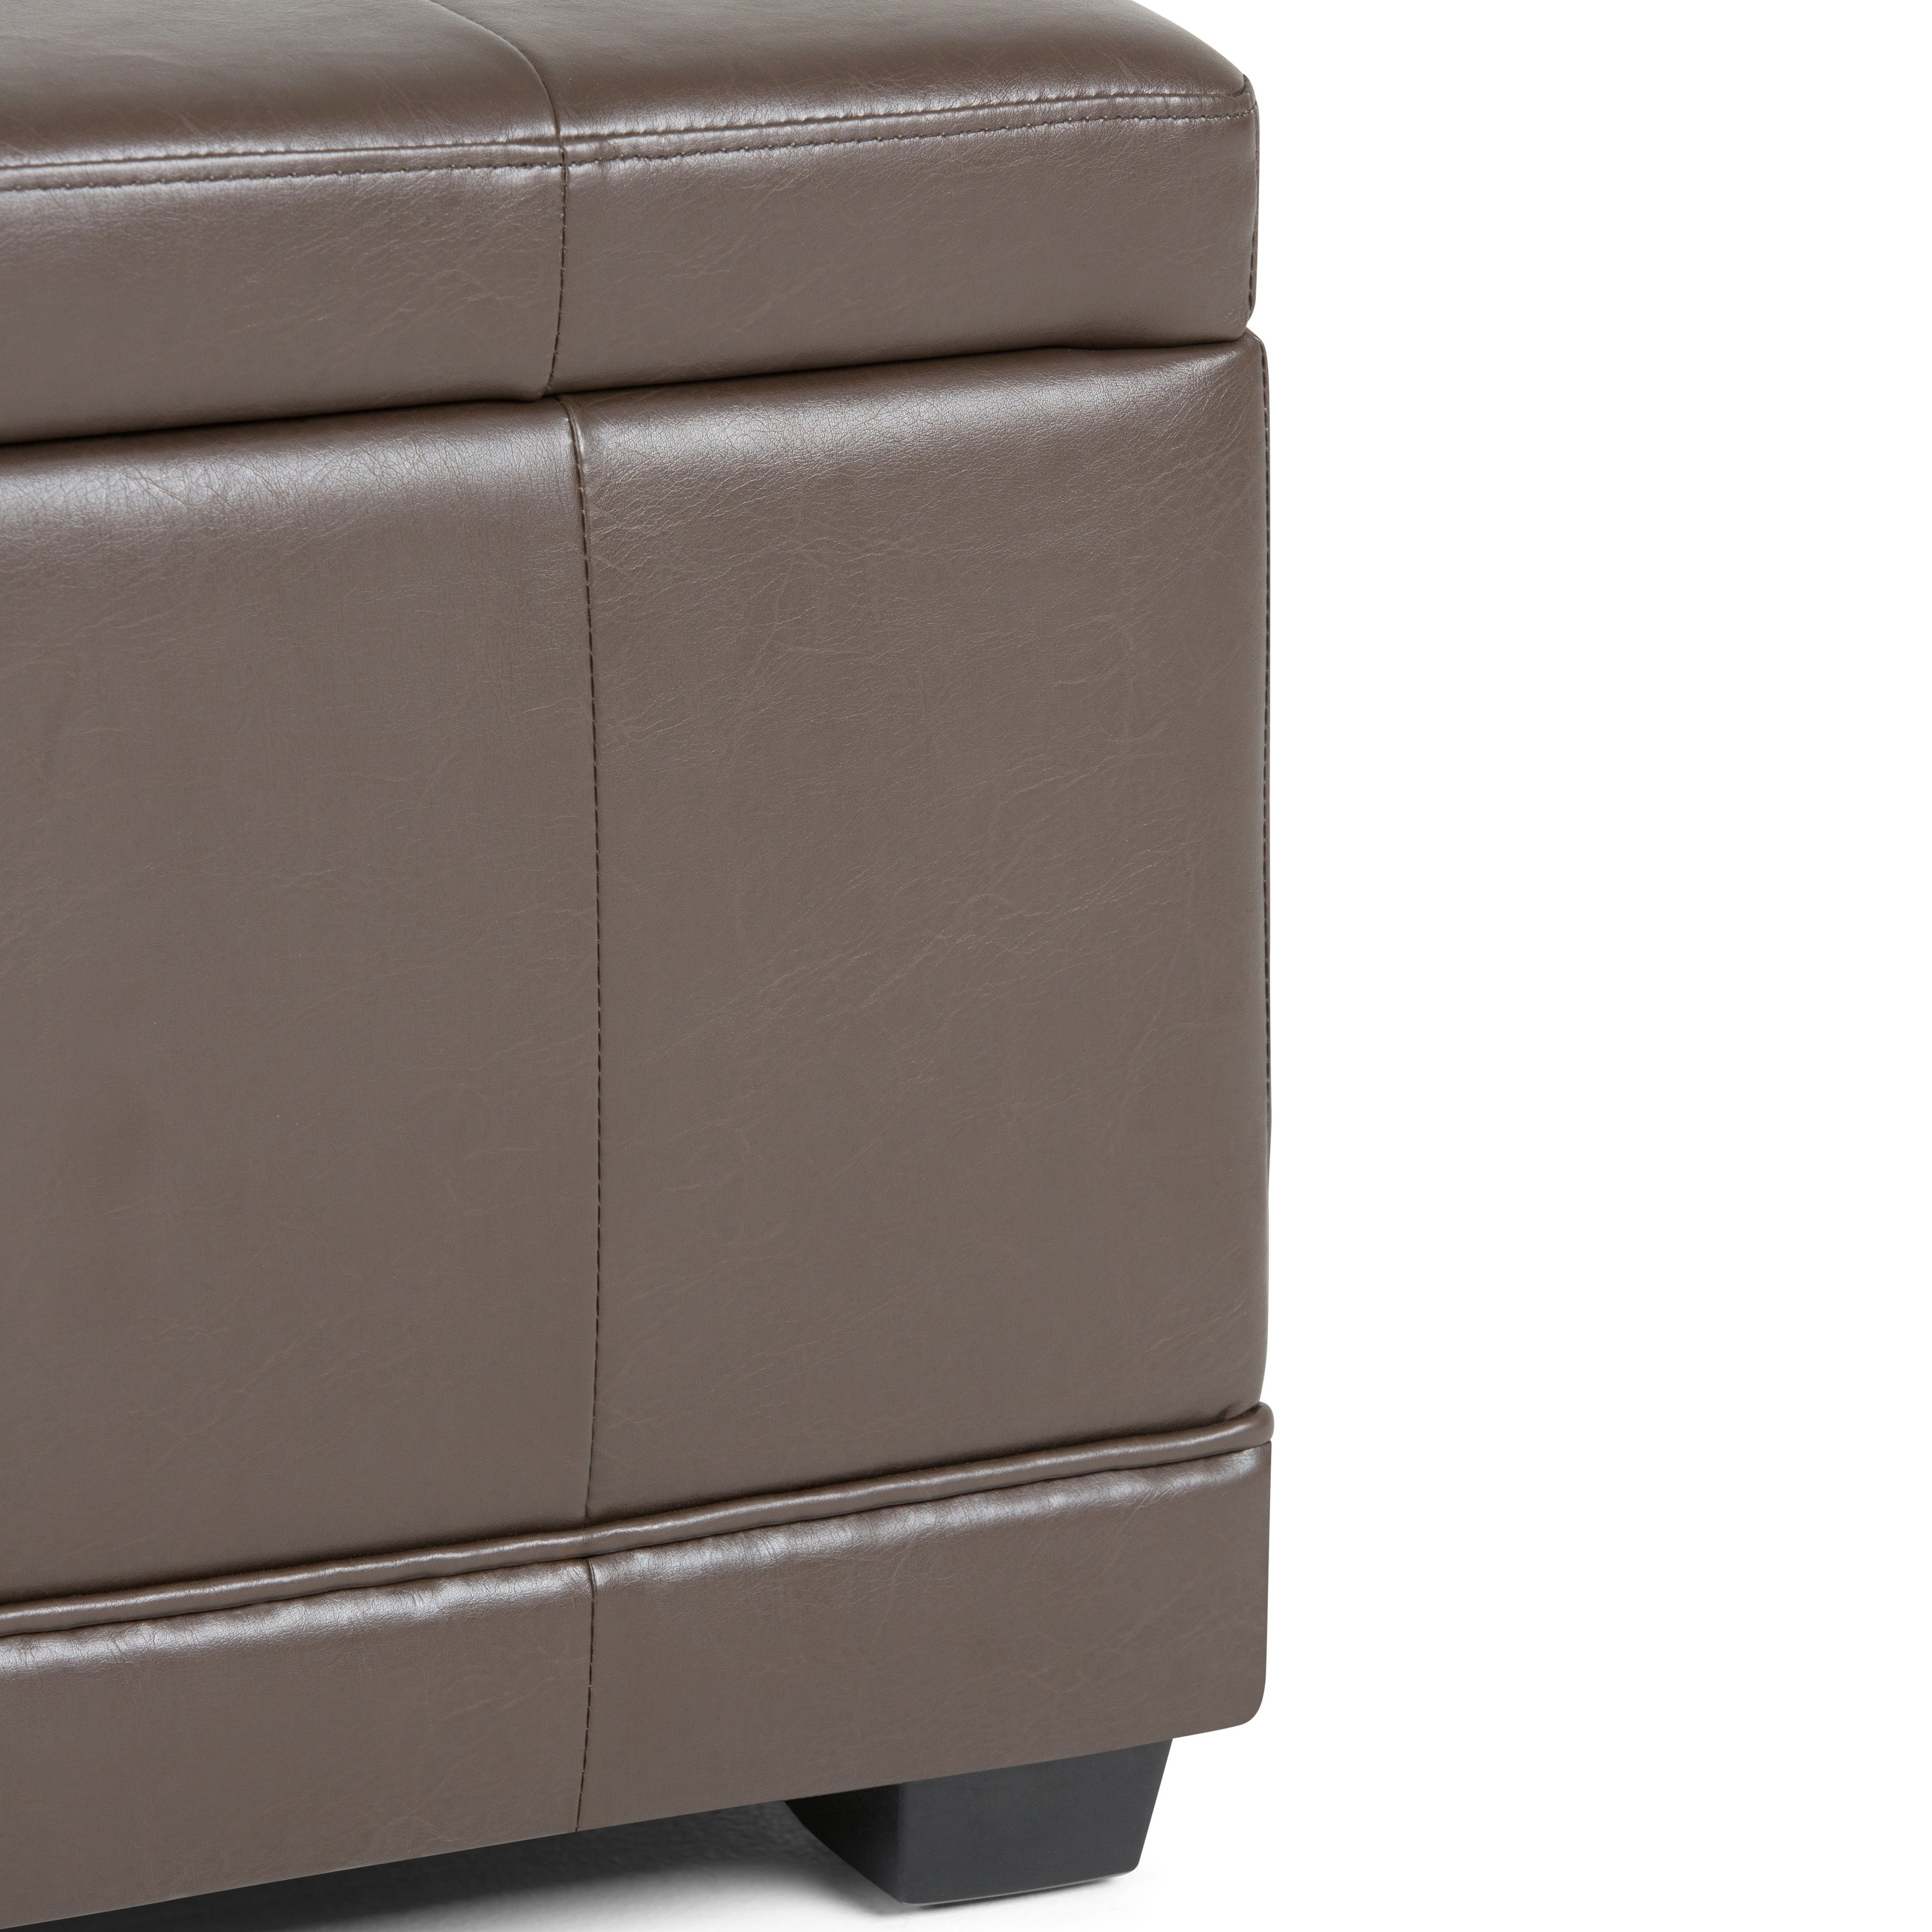 Fantastic Details About Wyndenhall Norwood 45 Inch Wide Contemporary Storage Medium Dailytribune Chair Design For Home Dailytribuneorg